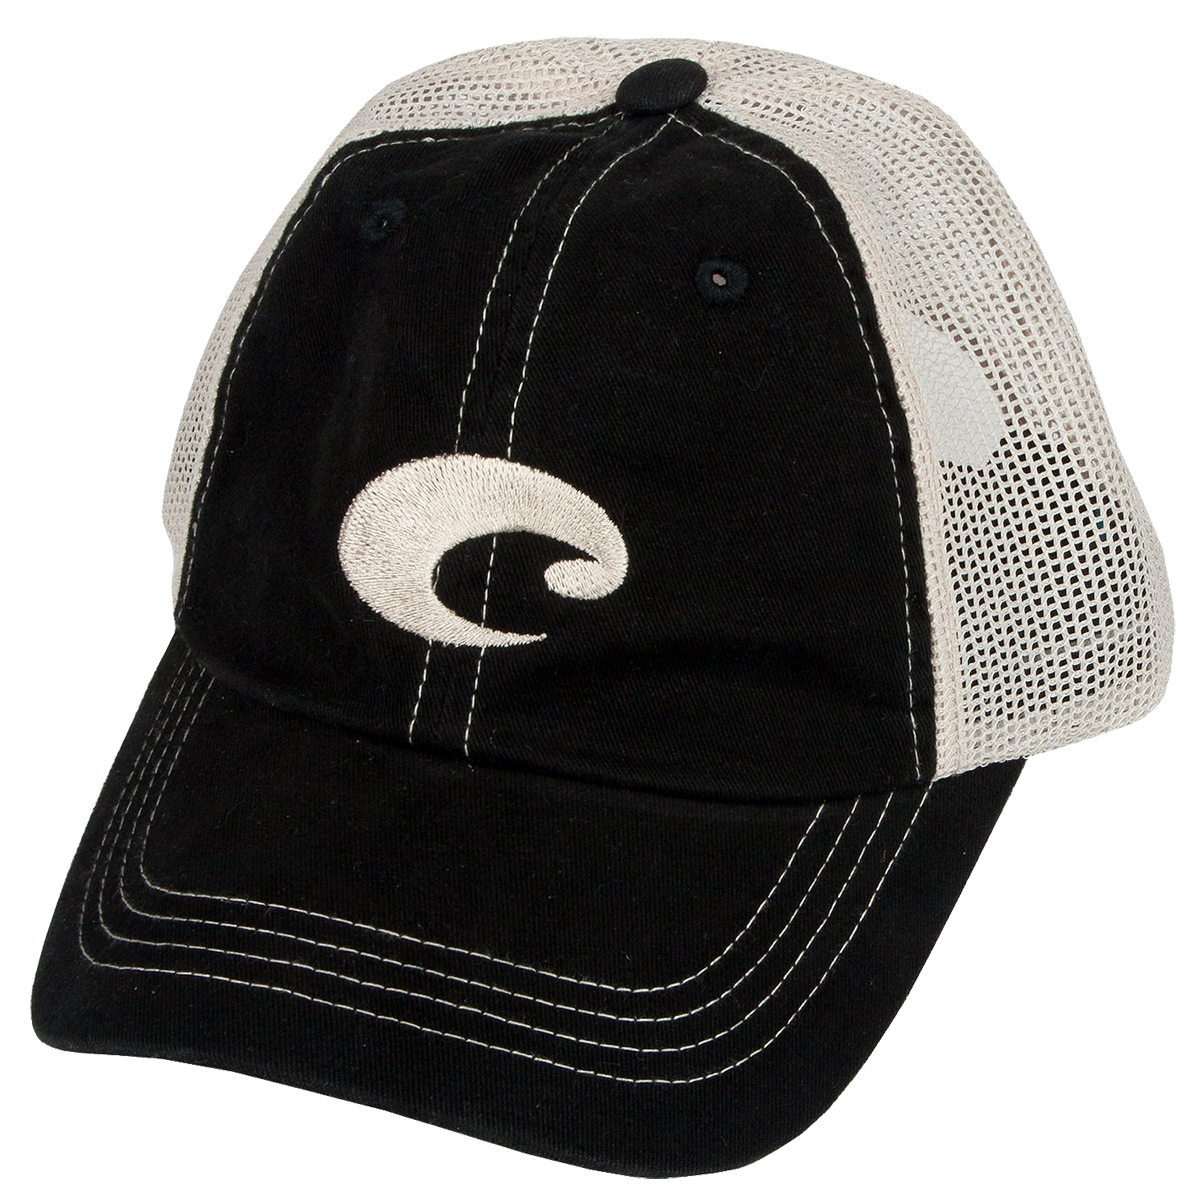 01bf85cbbd915 Details about Costa Del Mar Mesh Hat-Black